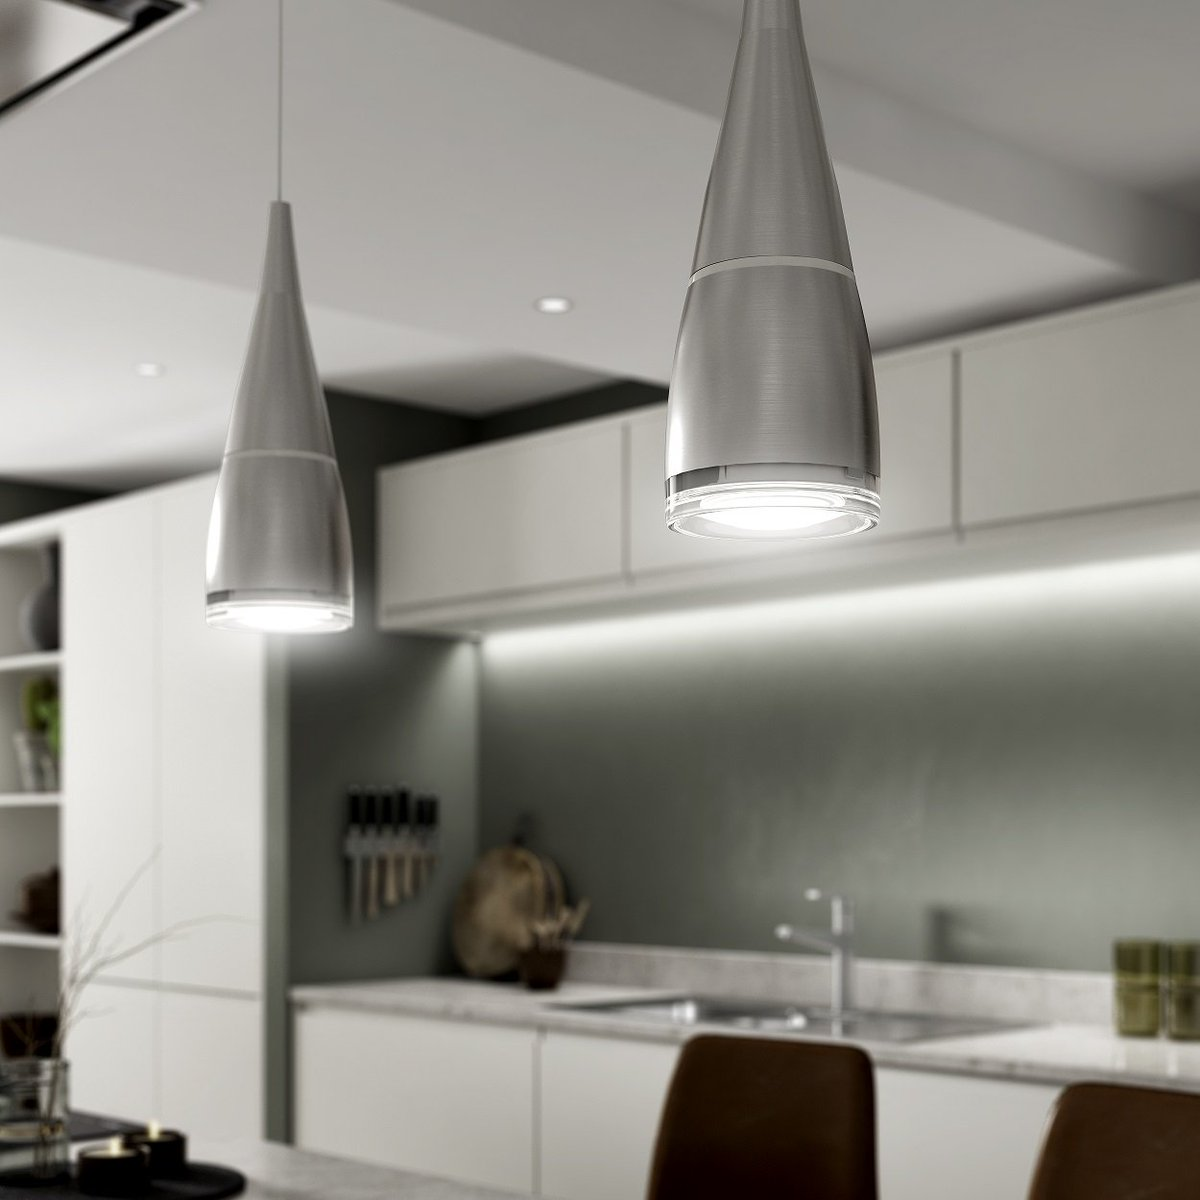 Wickes on twitter our camden dove grey matt kitchen has stylish our speaker lights are ideal for entertaining and help keep surfaces clutter free httpbit2engllk picitterqyqlsrluup aloadofball Image collections